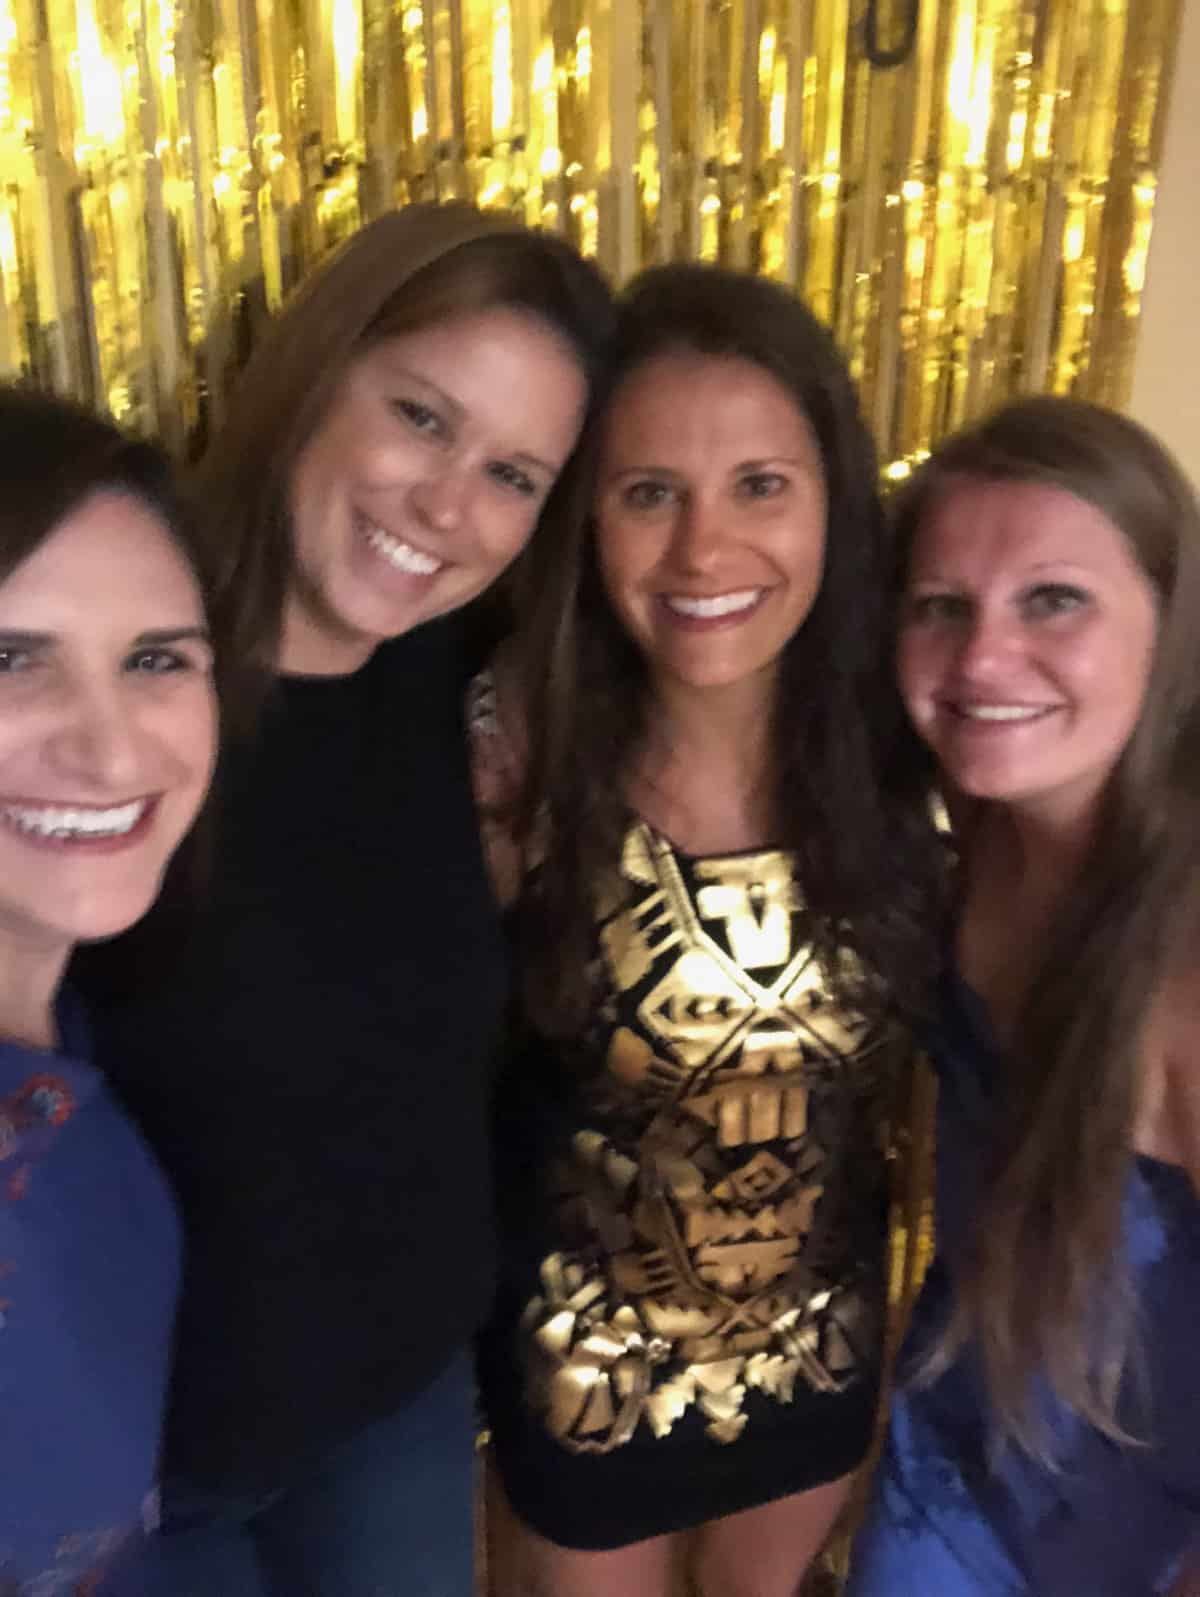 Four dark haired girls in front of a gold streamer, They are dressing up and ready to go out.